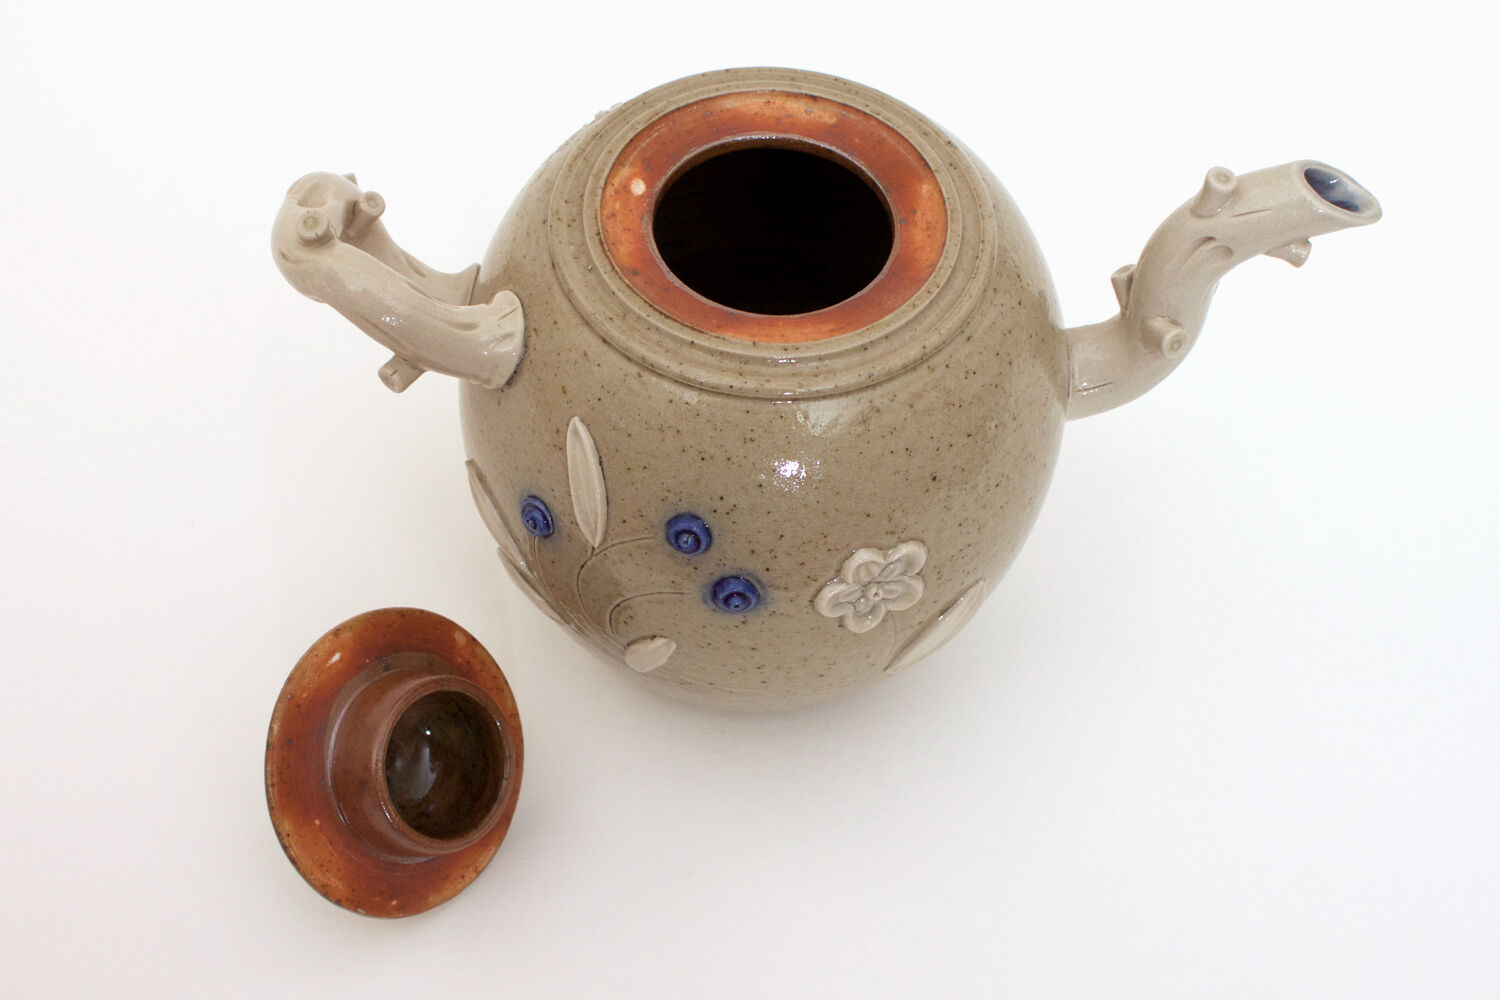 Peter Meanley Ceramic Teapot 18